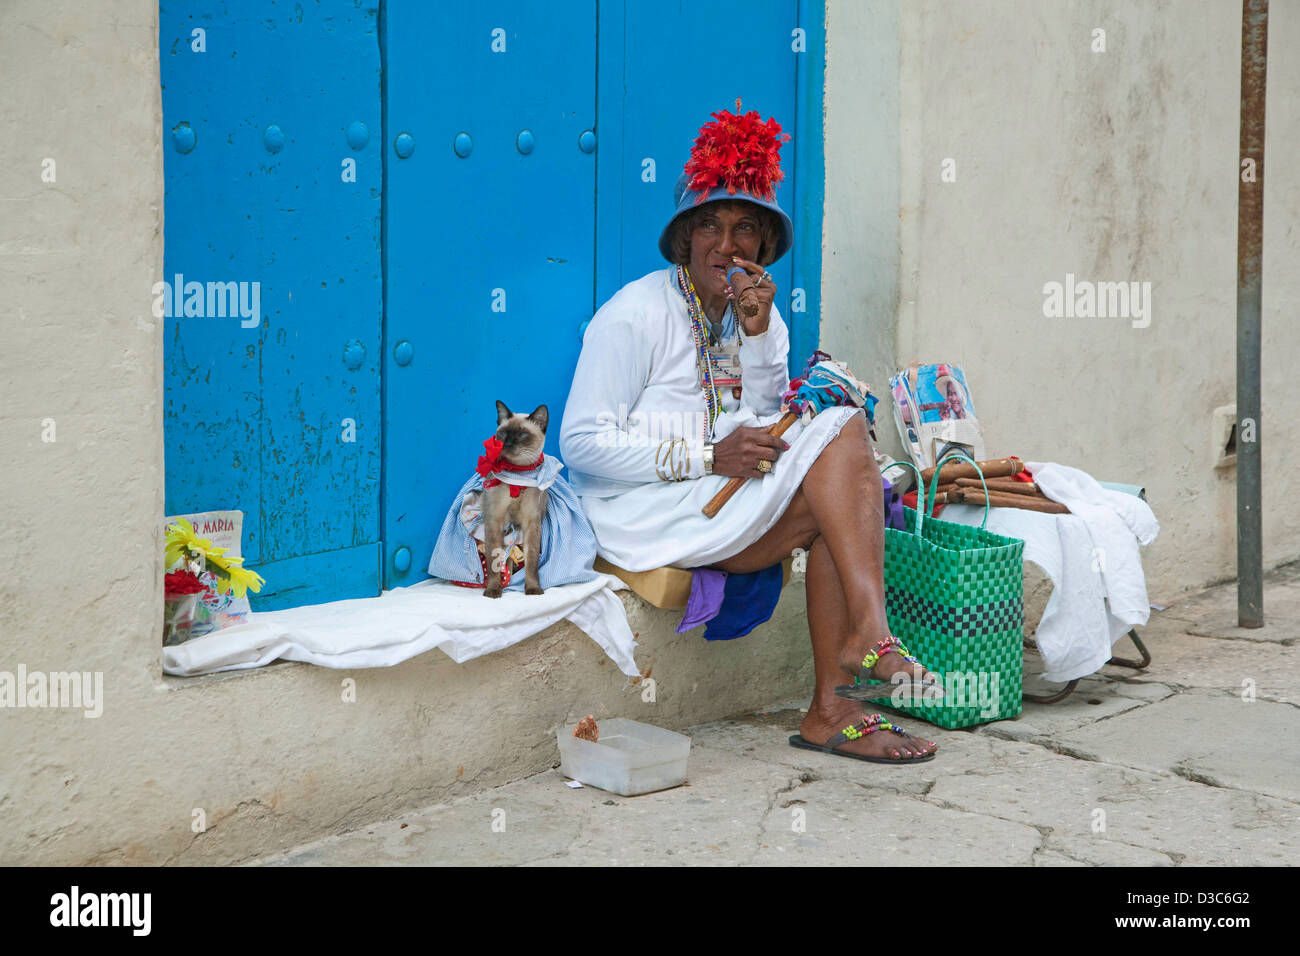 Licensed street model posing for tourists as colourful Cuban woman smoking huge Havana cigar and dressed cat in - Stock Image